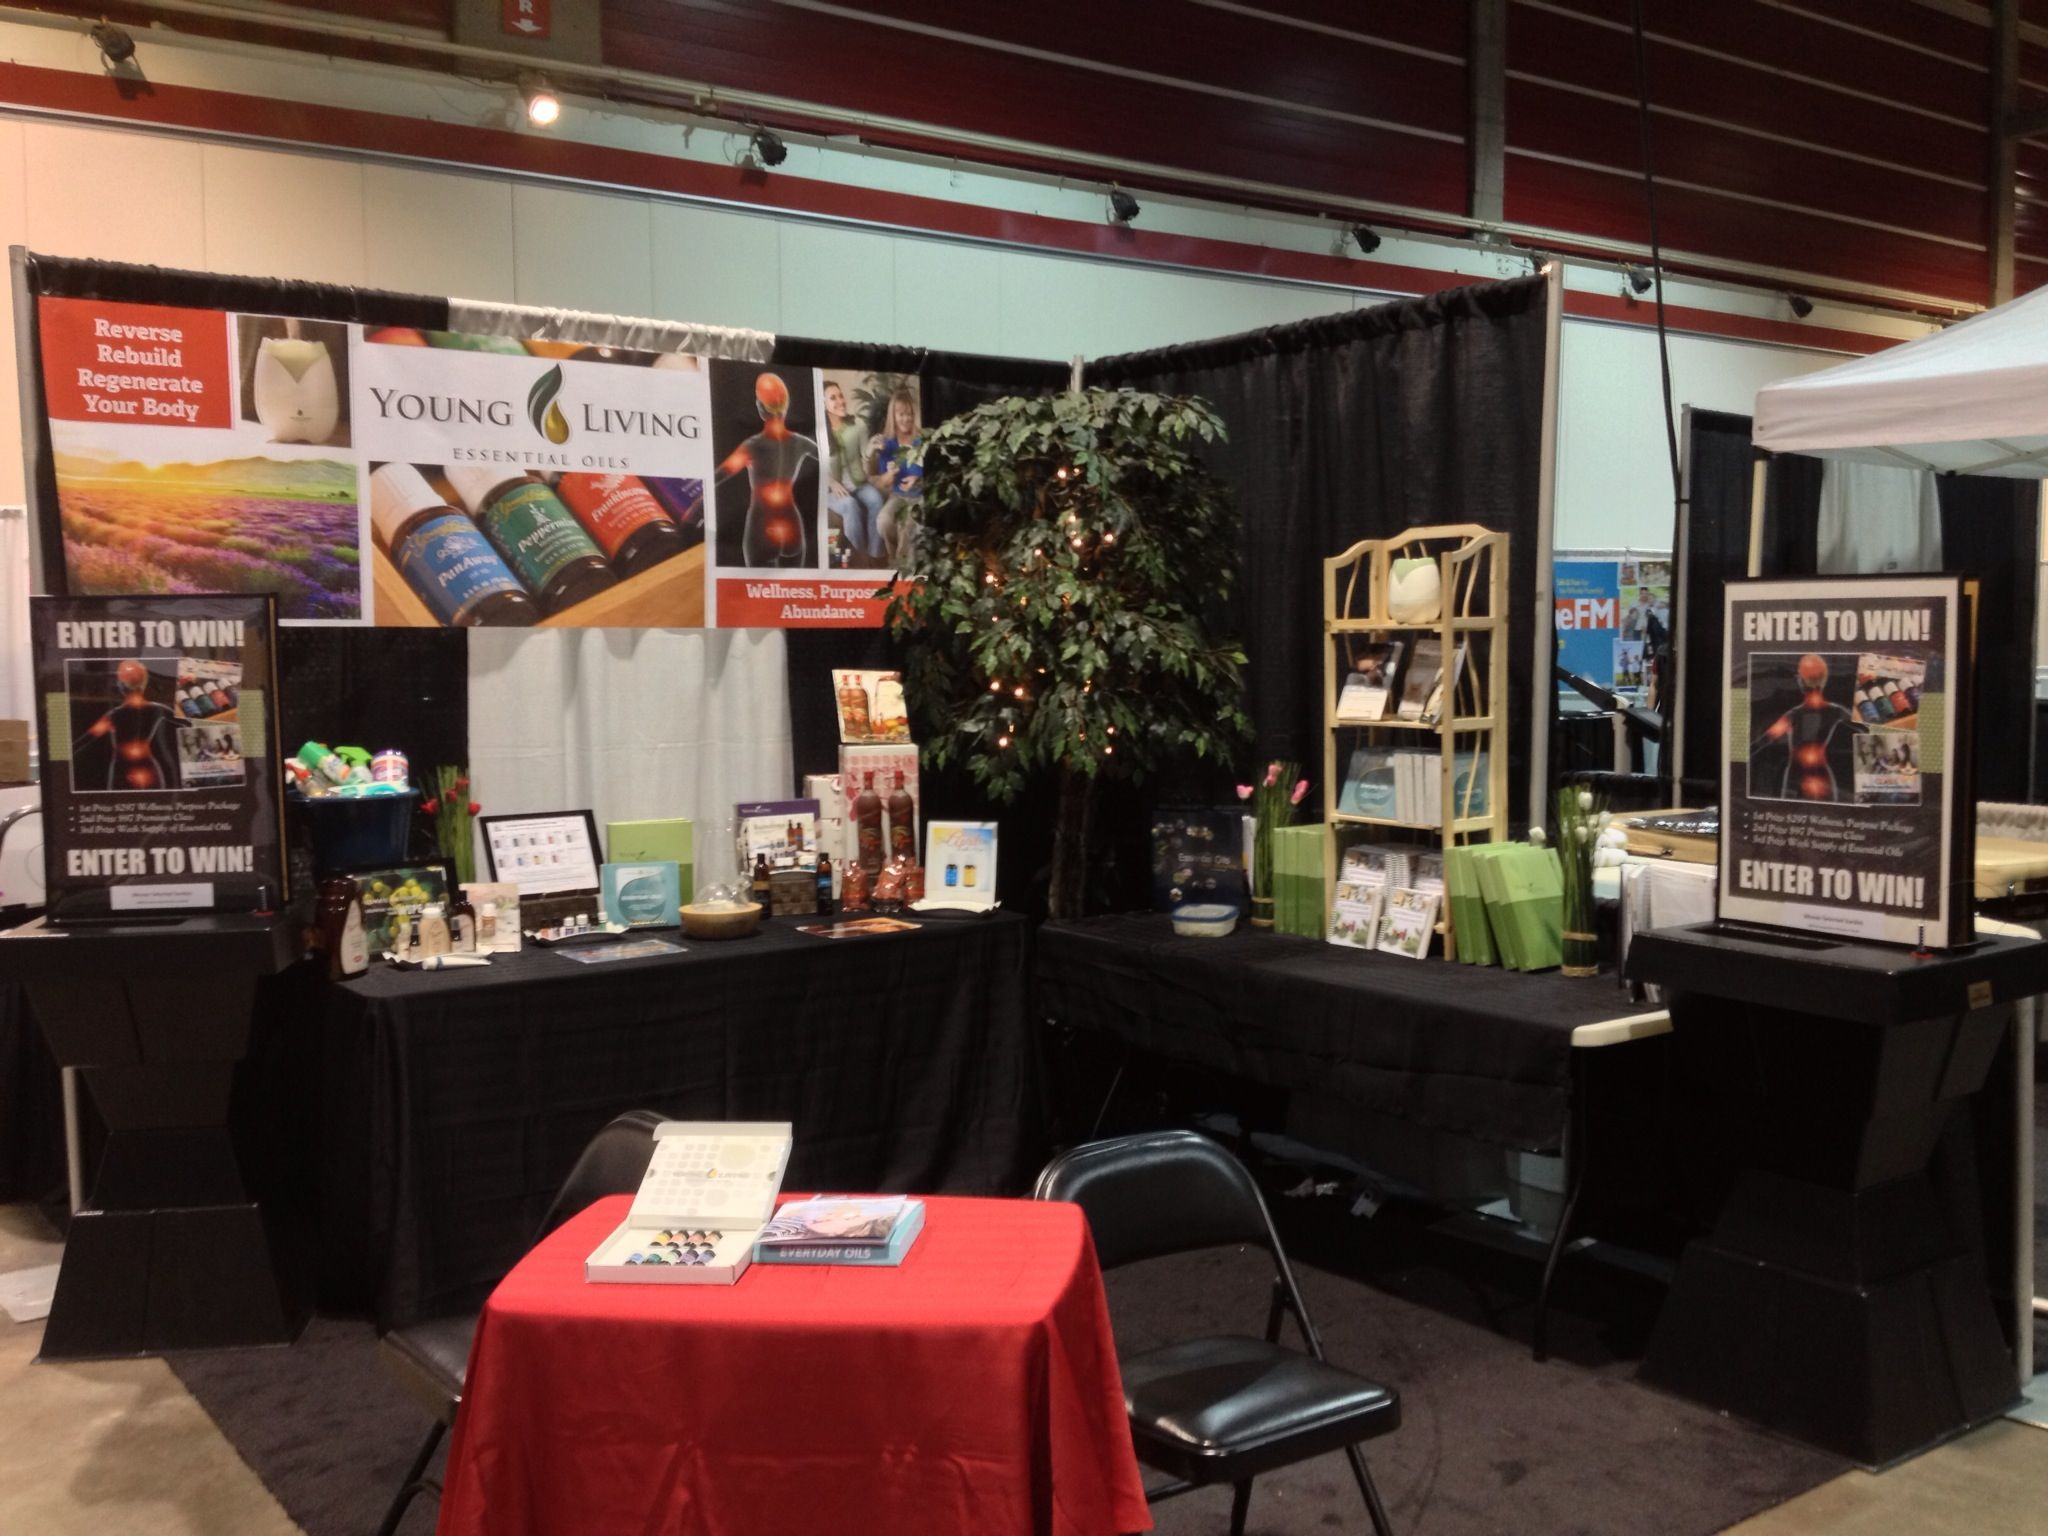 calgary womens show booth april 2013